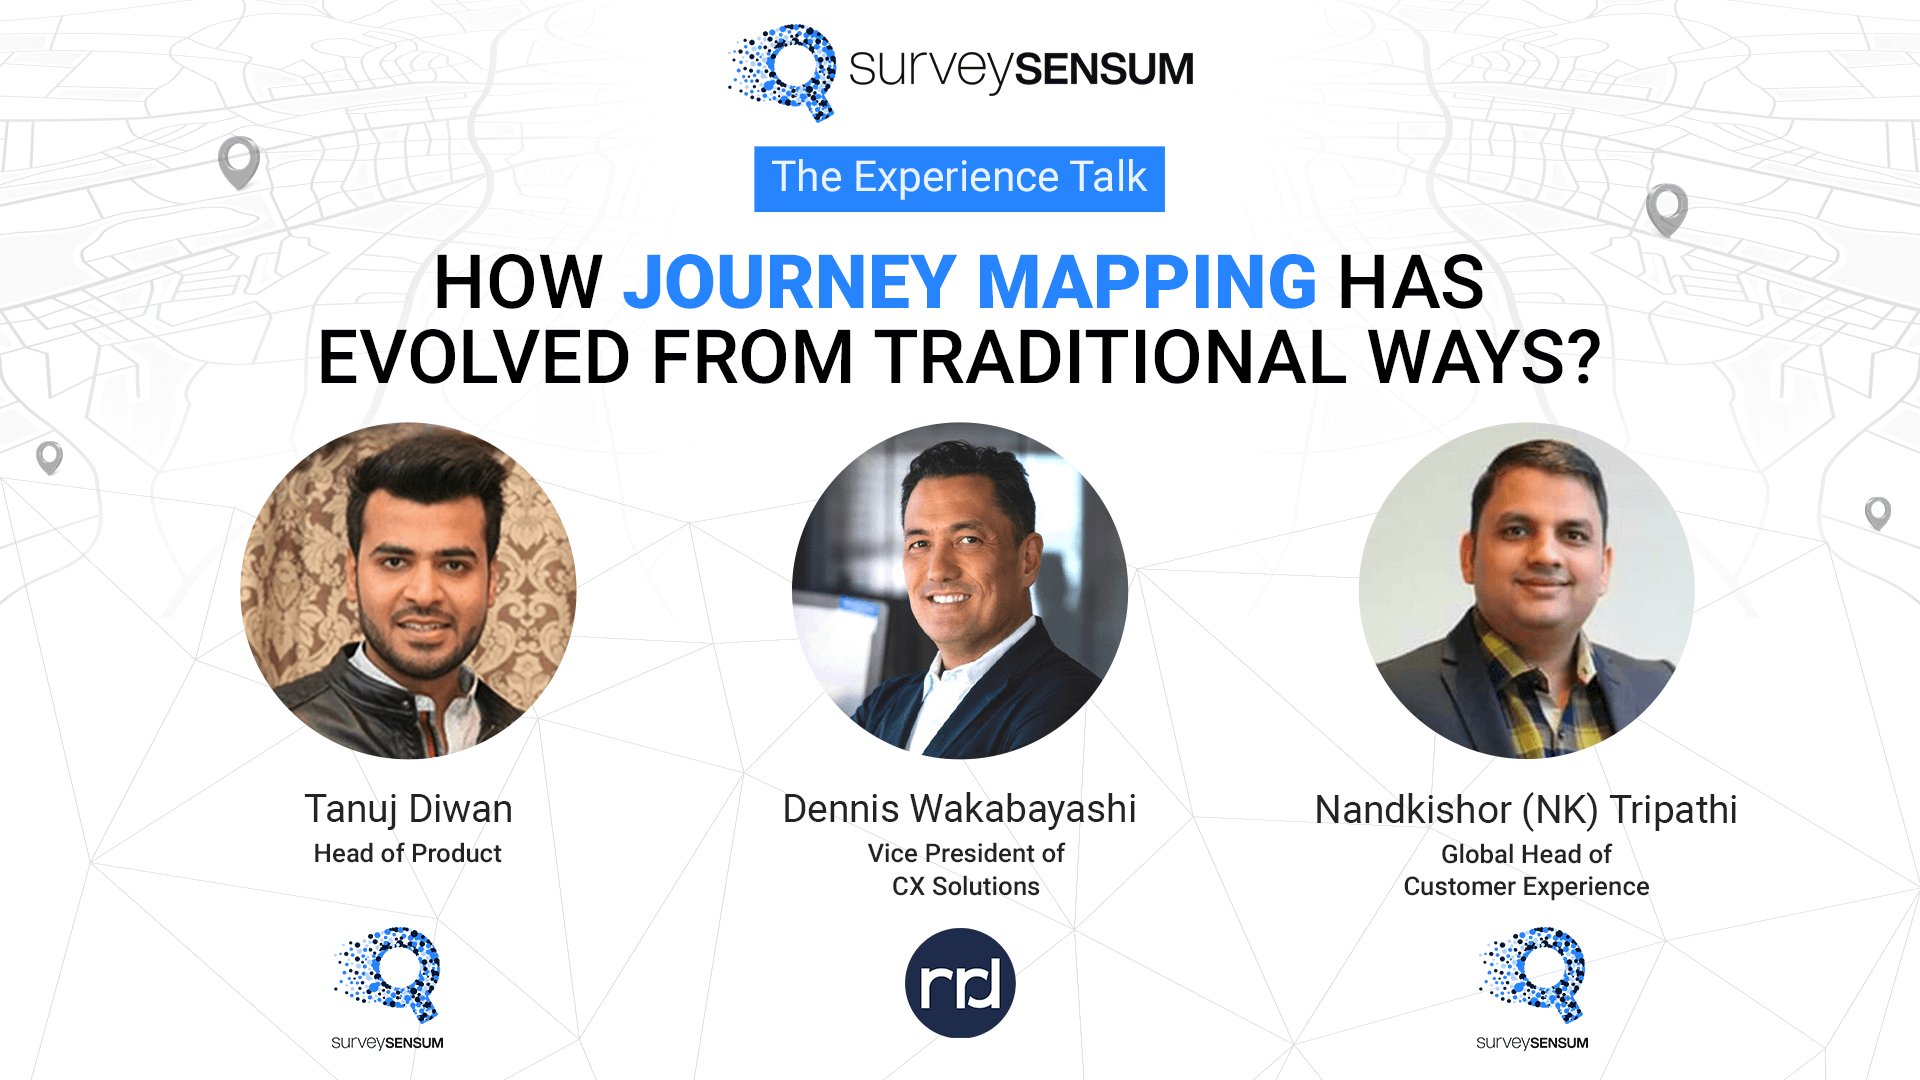 How journey mapping has evolved from traditional ways